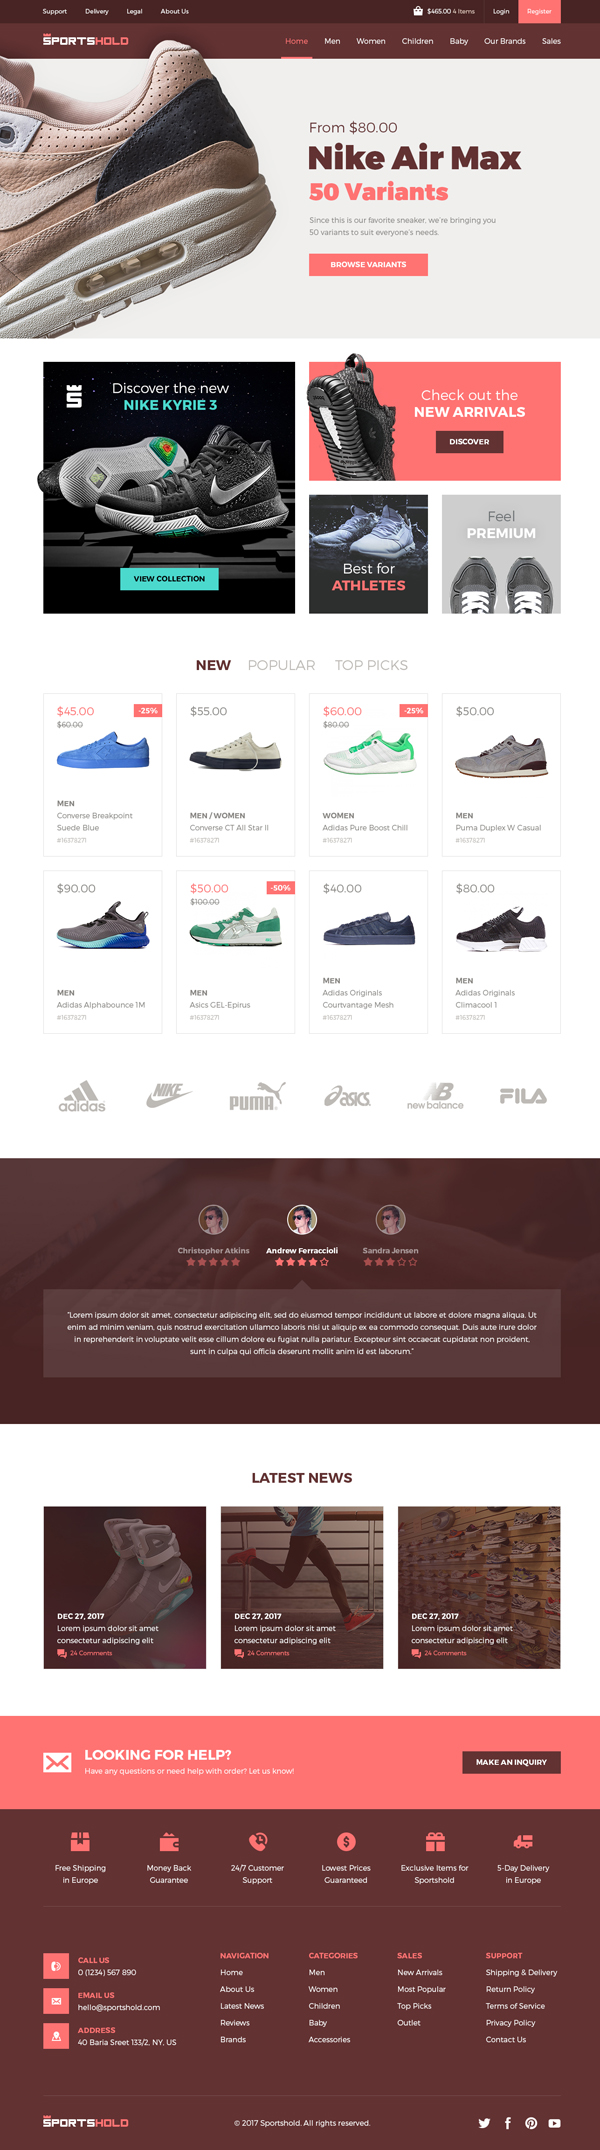 Free Ecommerce Landing PSD Template